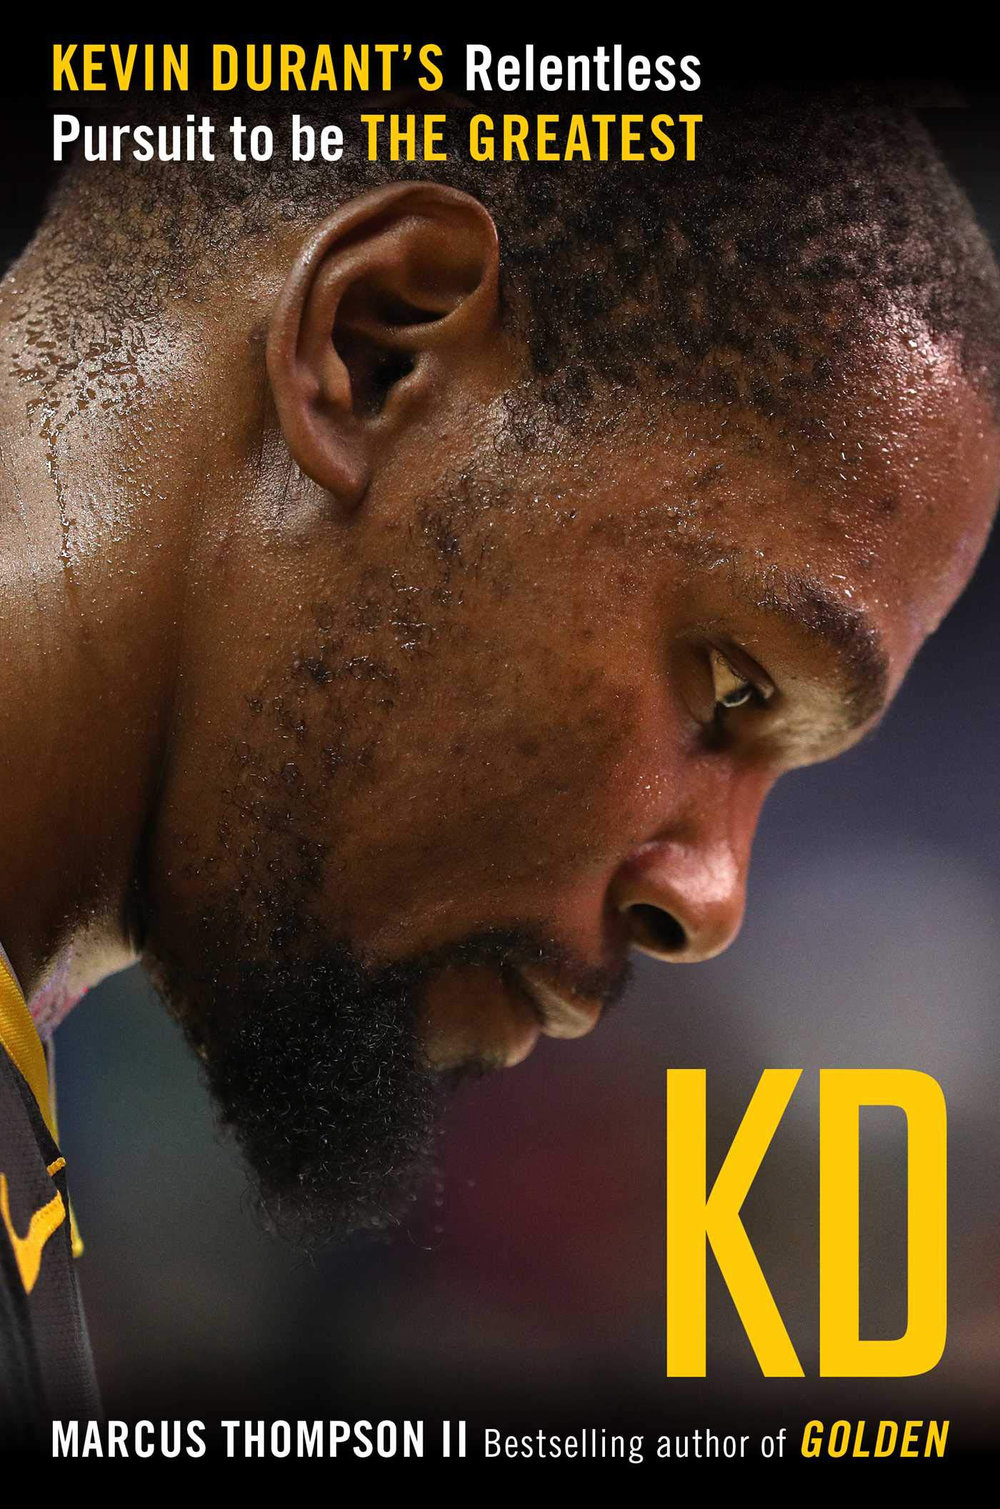 KD Kevin Durant's Relentless Pursuit to Be the Greatest By Marcus Thompson II